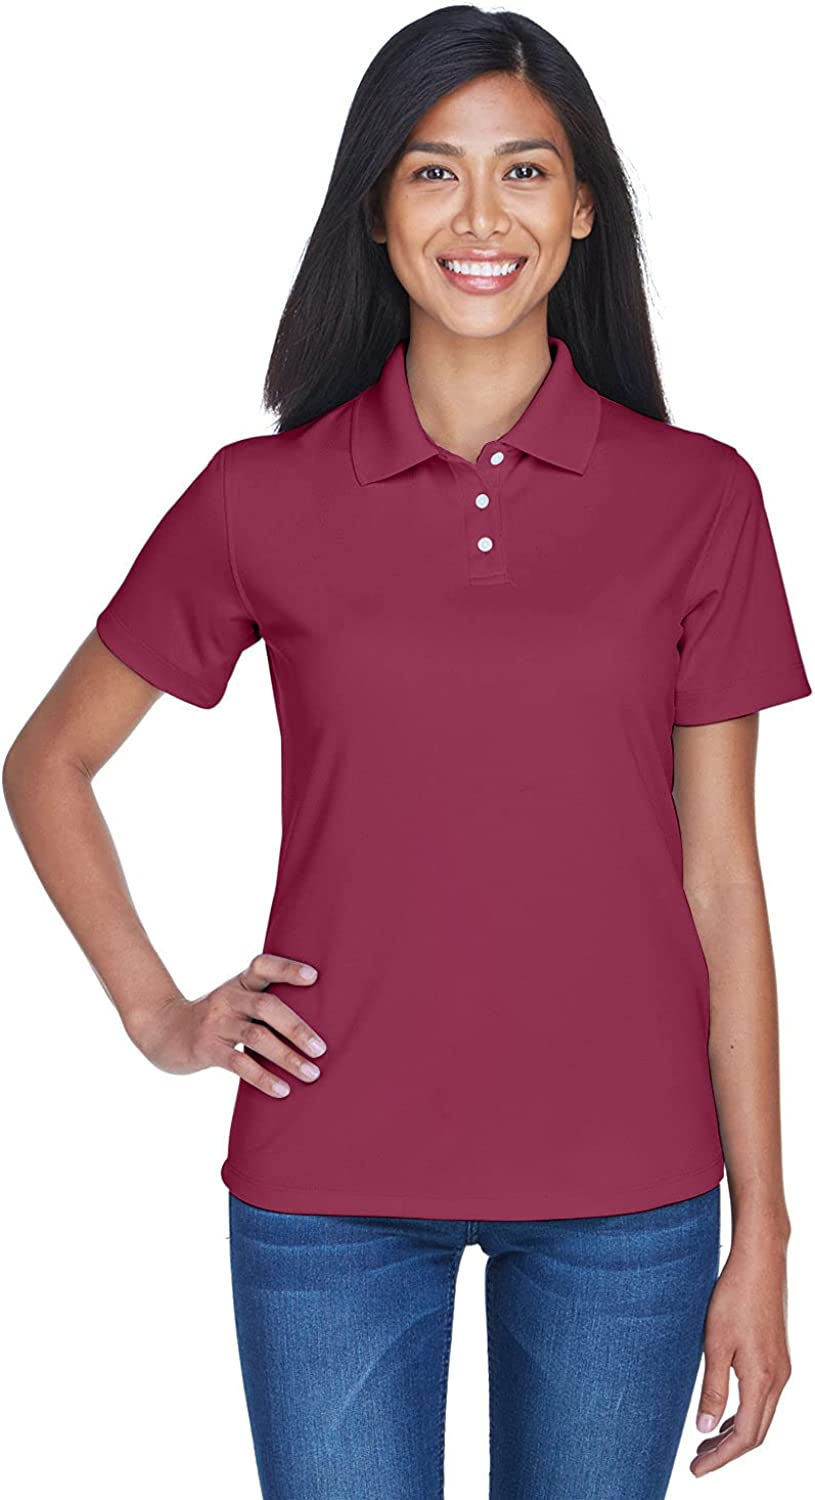 UltraClub Women's UV Protection Stain Release Performance Polo Shirt